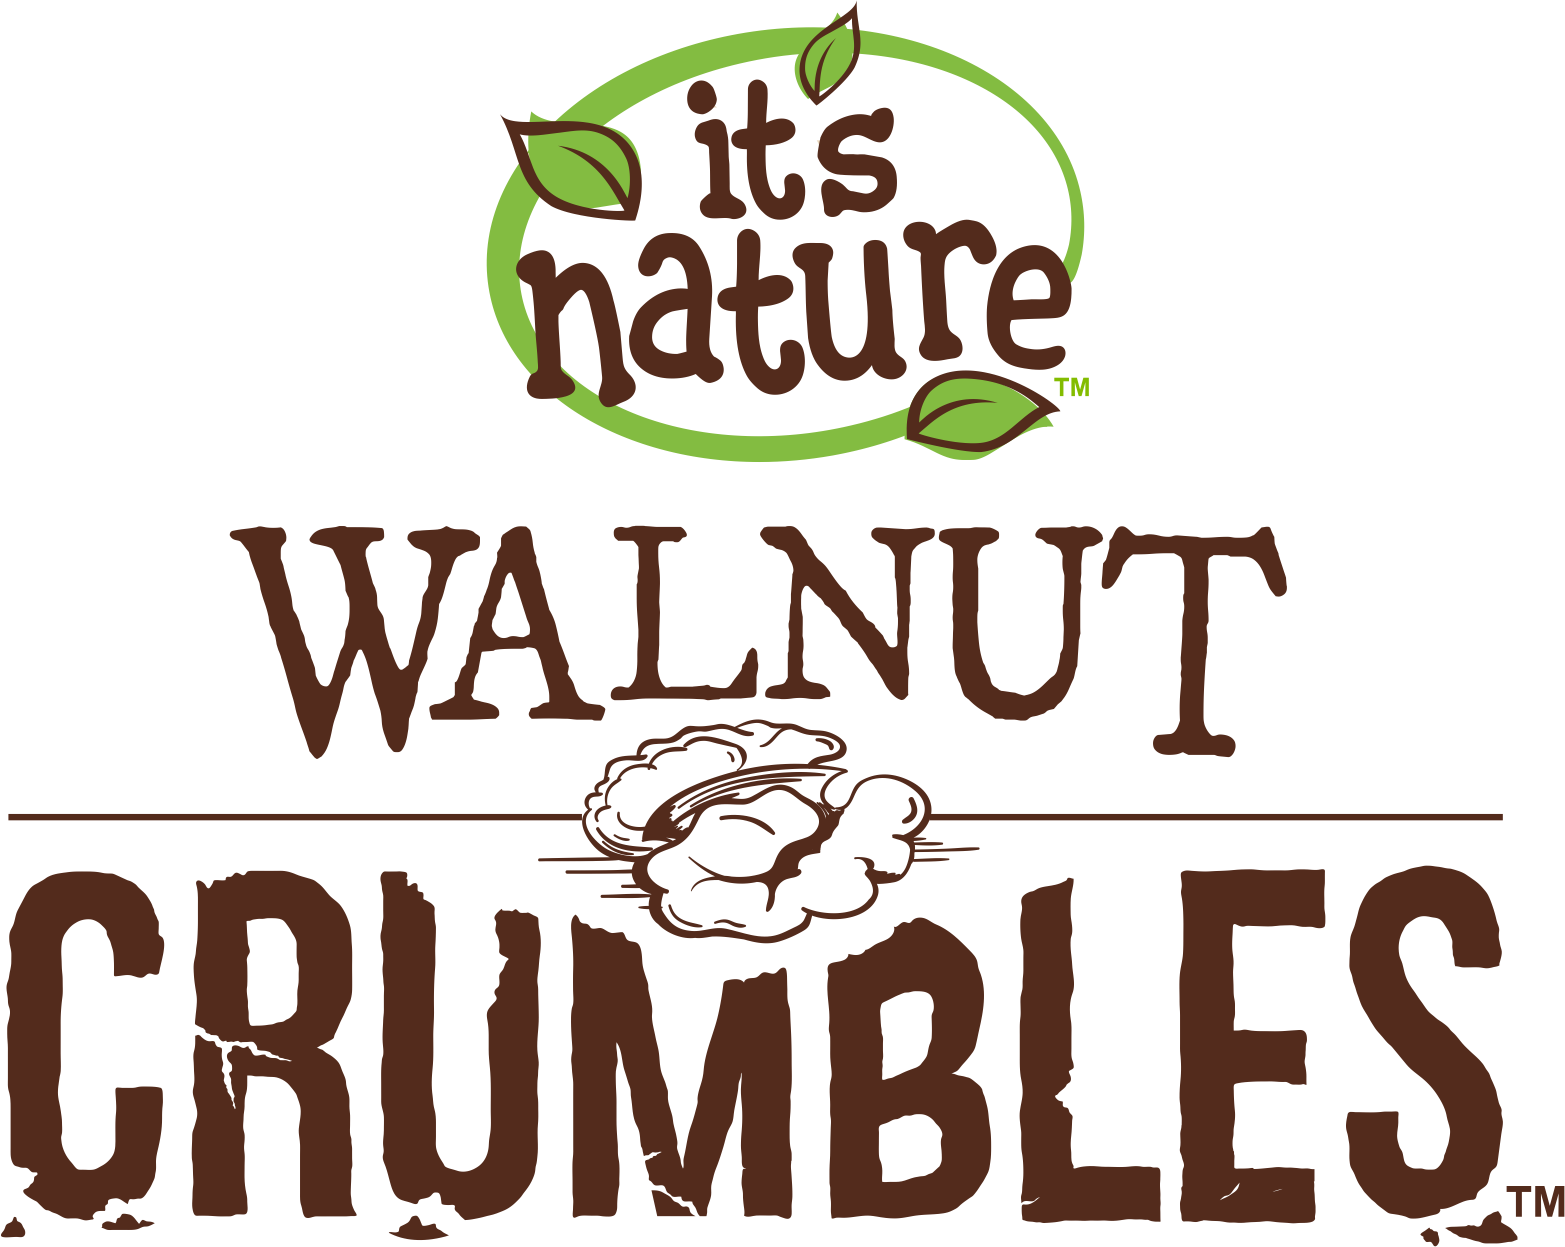 It's Nature Walnut Crumbles Logo